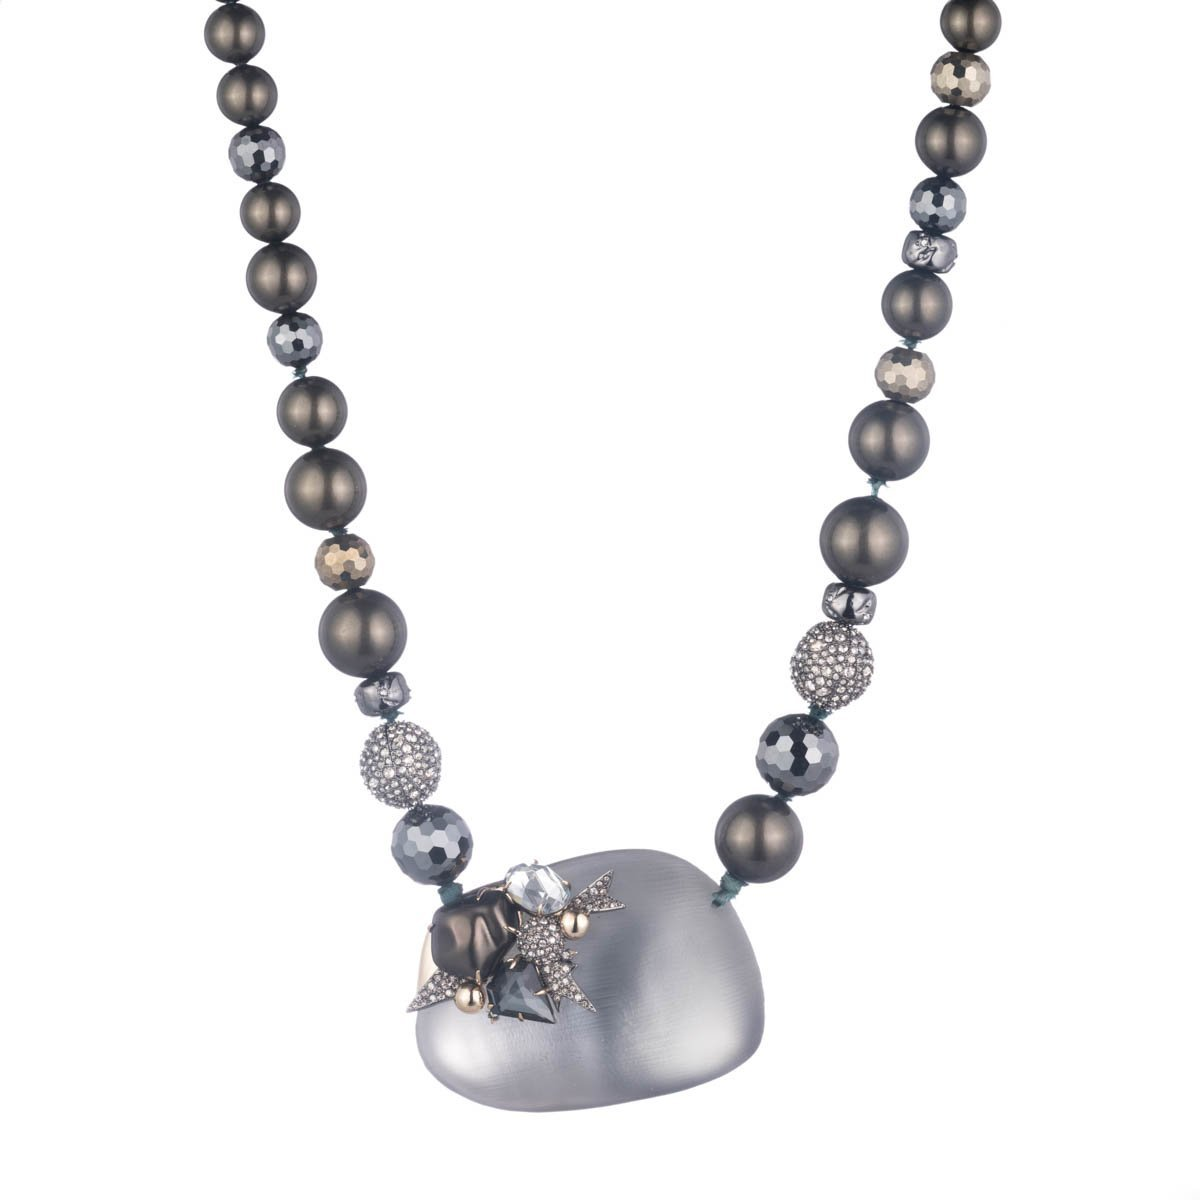 Alexis Bittar Medium Lucite Bib Necklace On Beaded Strand with Pearl and Crystal Detail